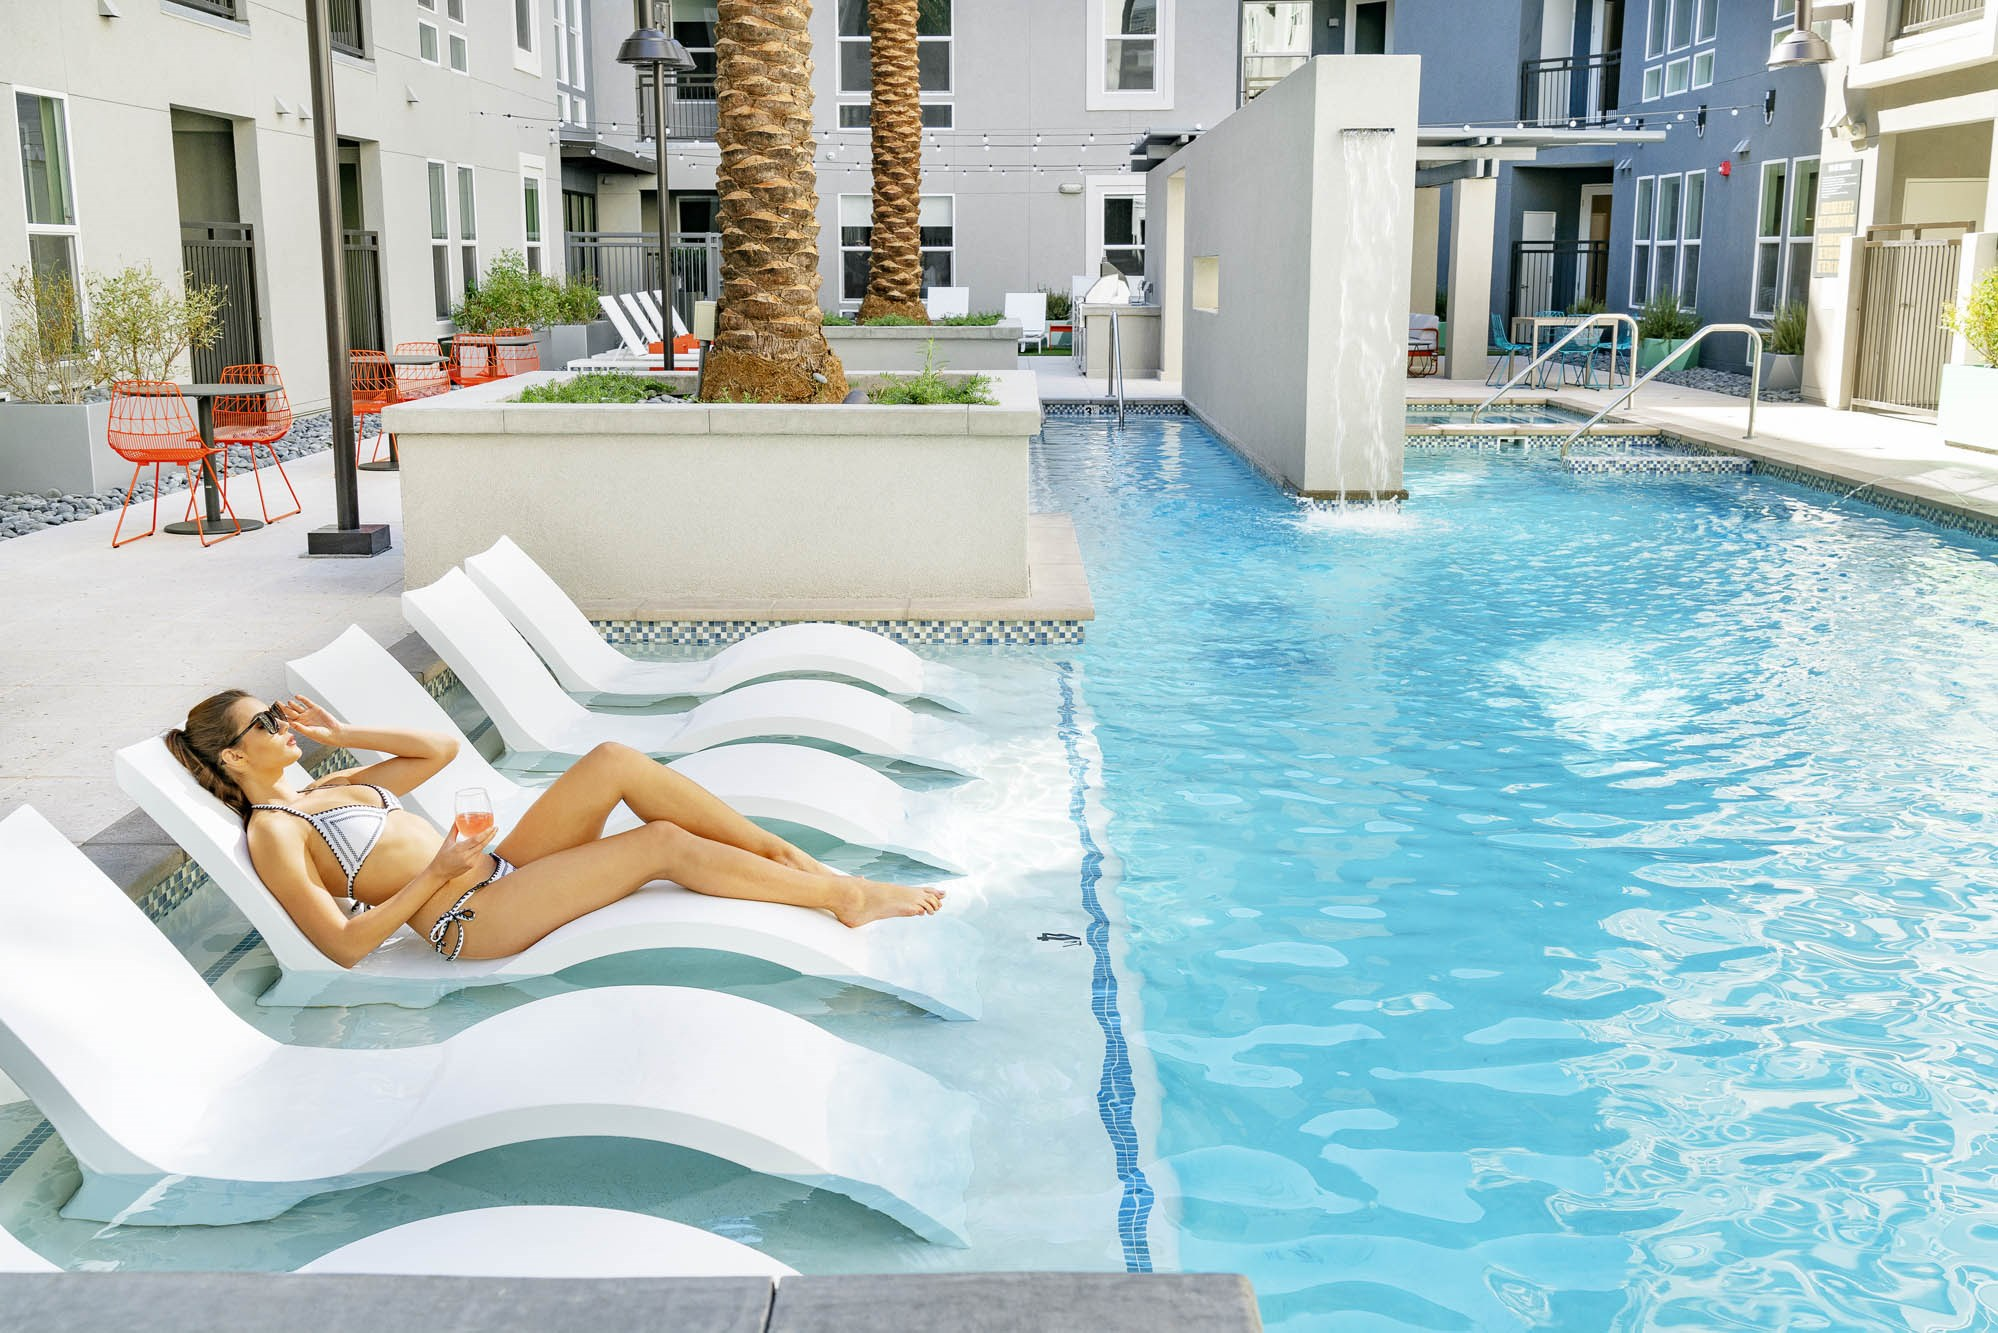 In-Pool Loungers